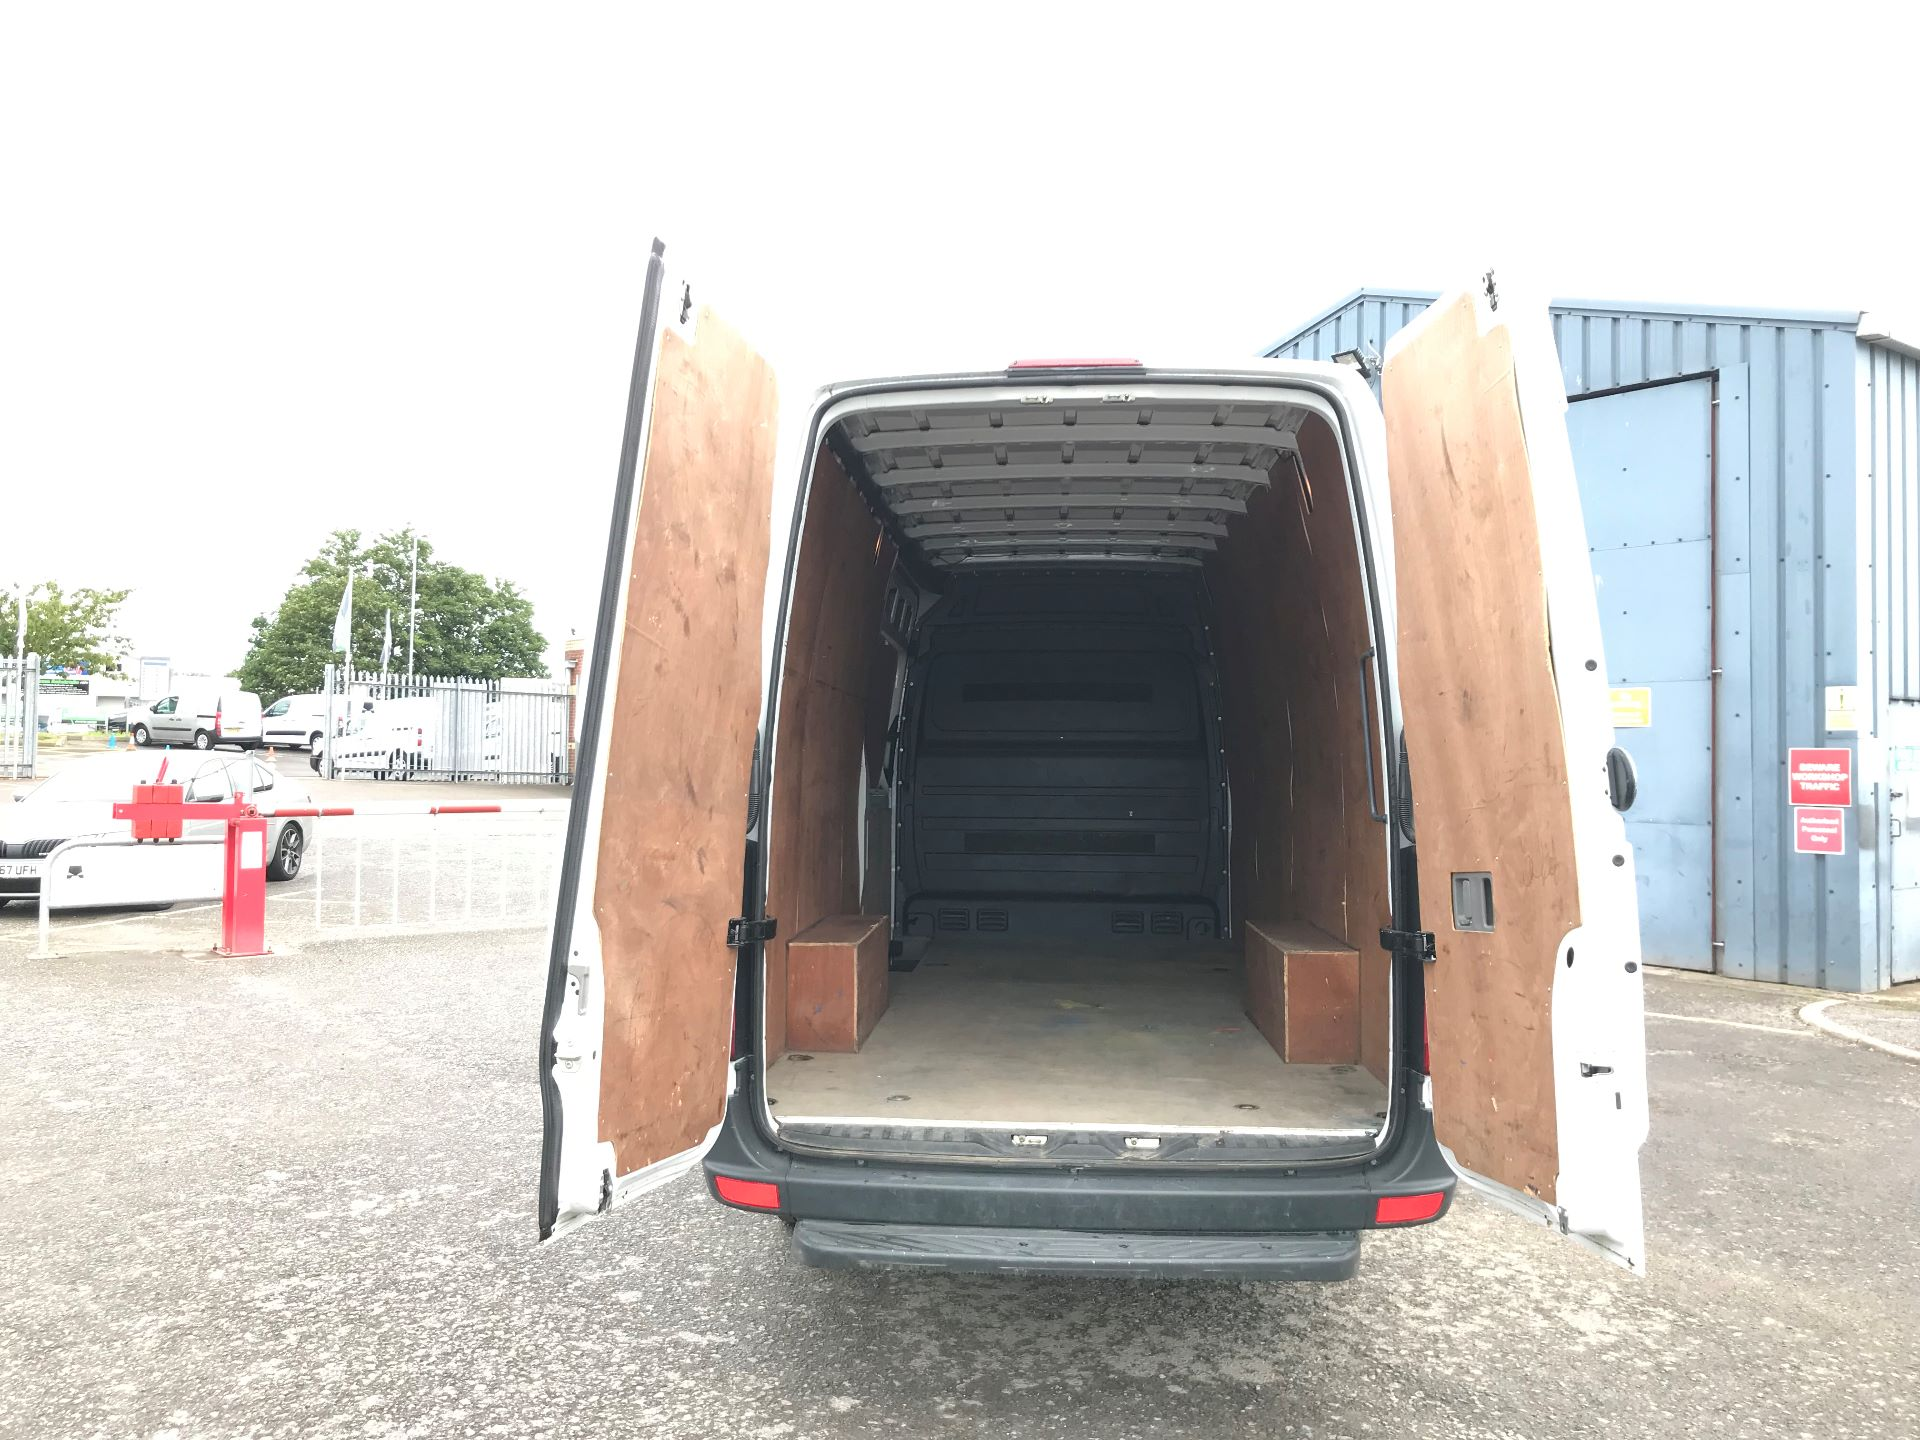 2017 Mercedes-Benz Sprinter 3.5T High Roof Van *VALUE RANGE VEHICLE CONDITION REFLECTED IN PRICE* (KY17GXT) Image 15